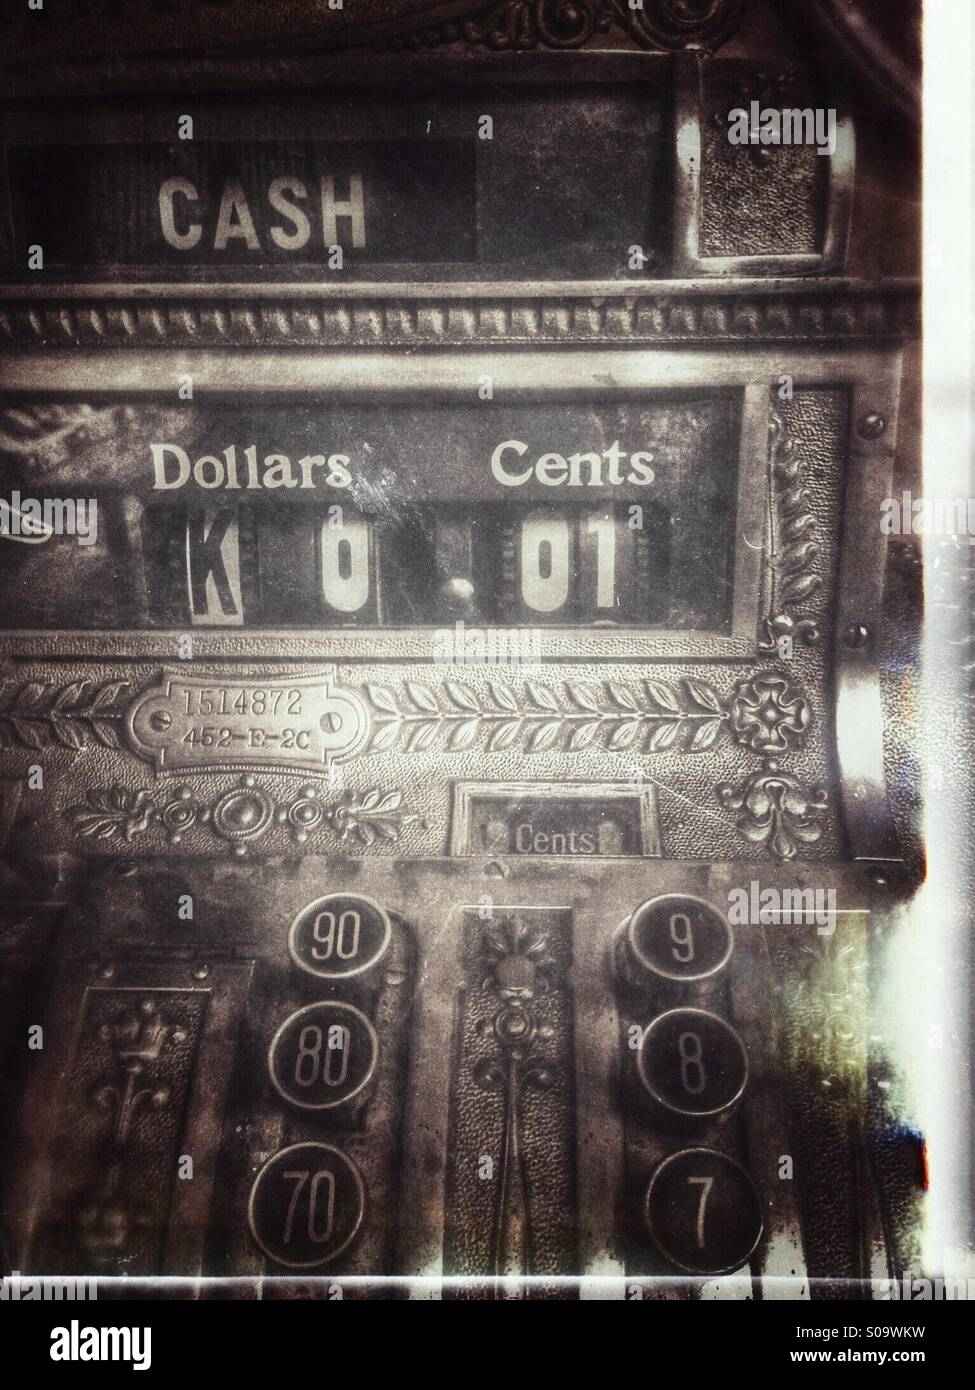 Antique cash register. - Stock Image